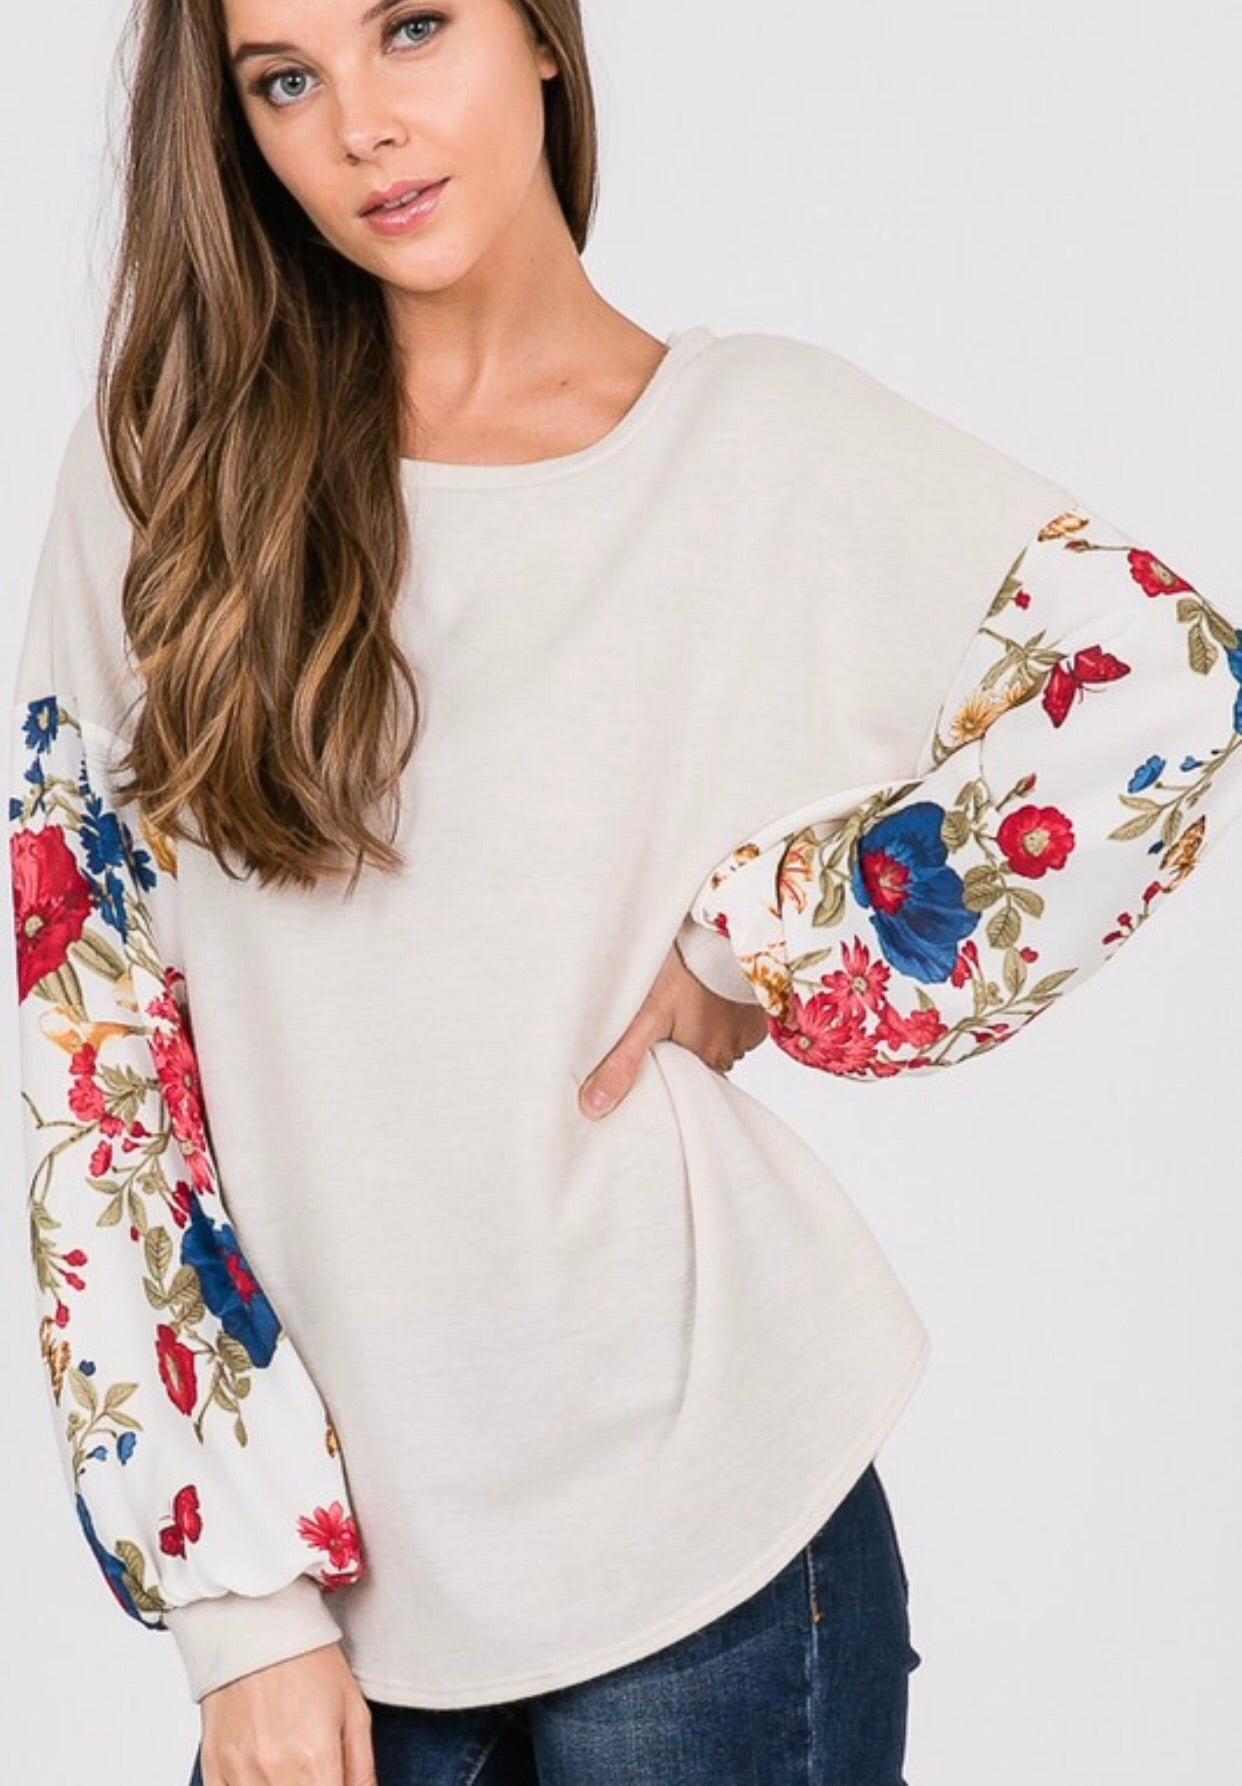 Floral Sleeved Knit Top